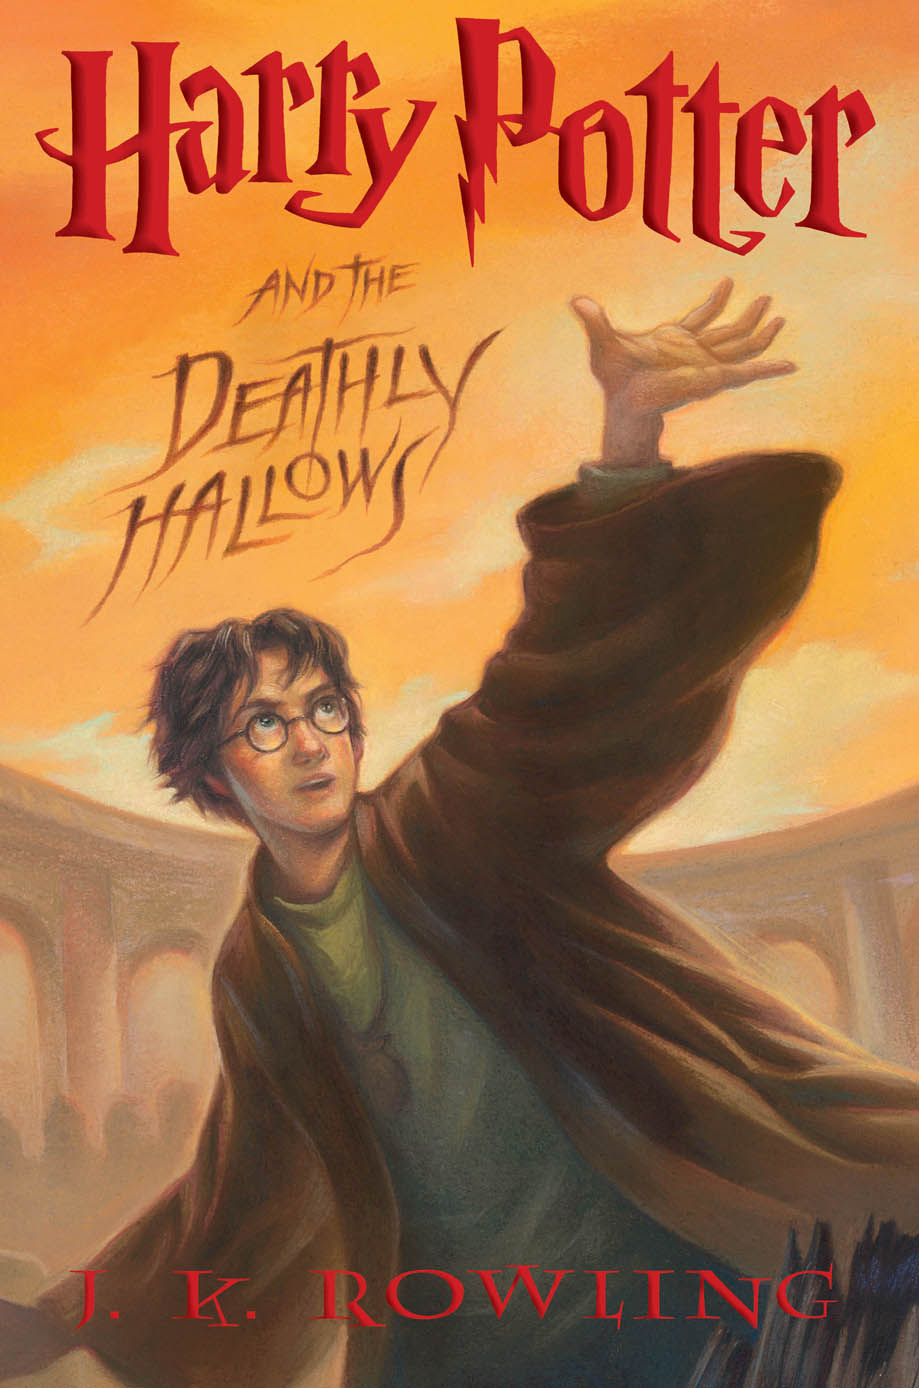 book 7 harry potter and the deathly hallows cover art